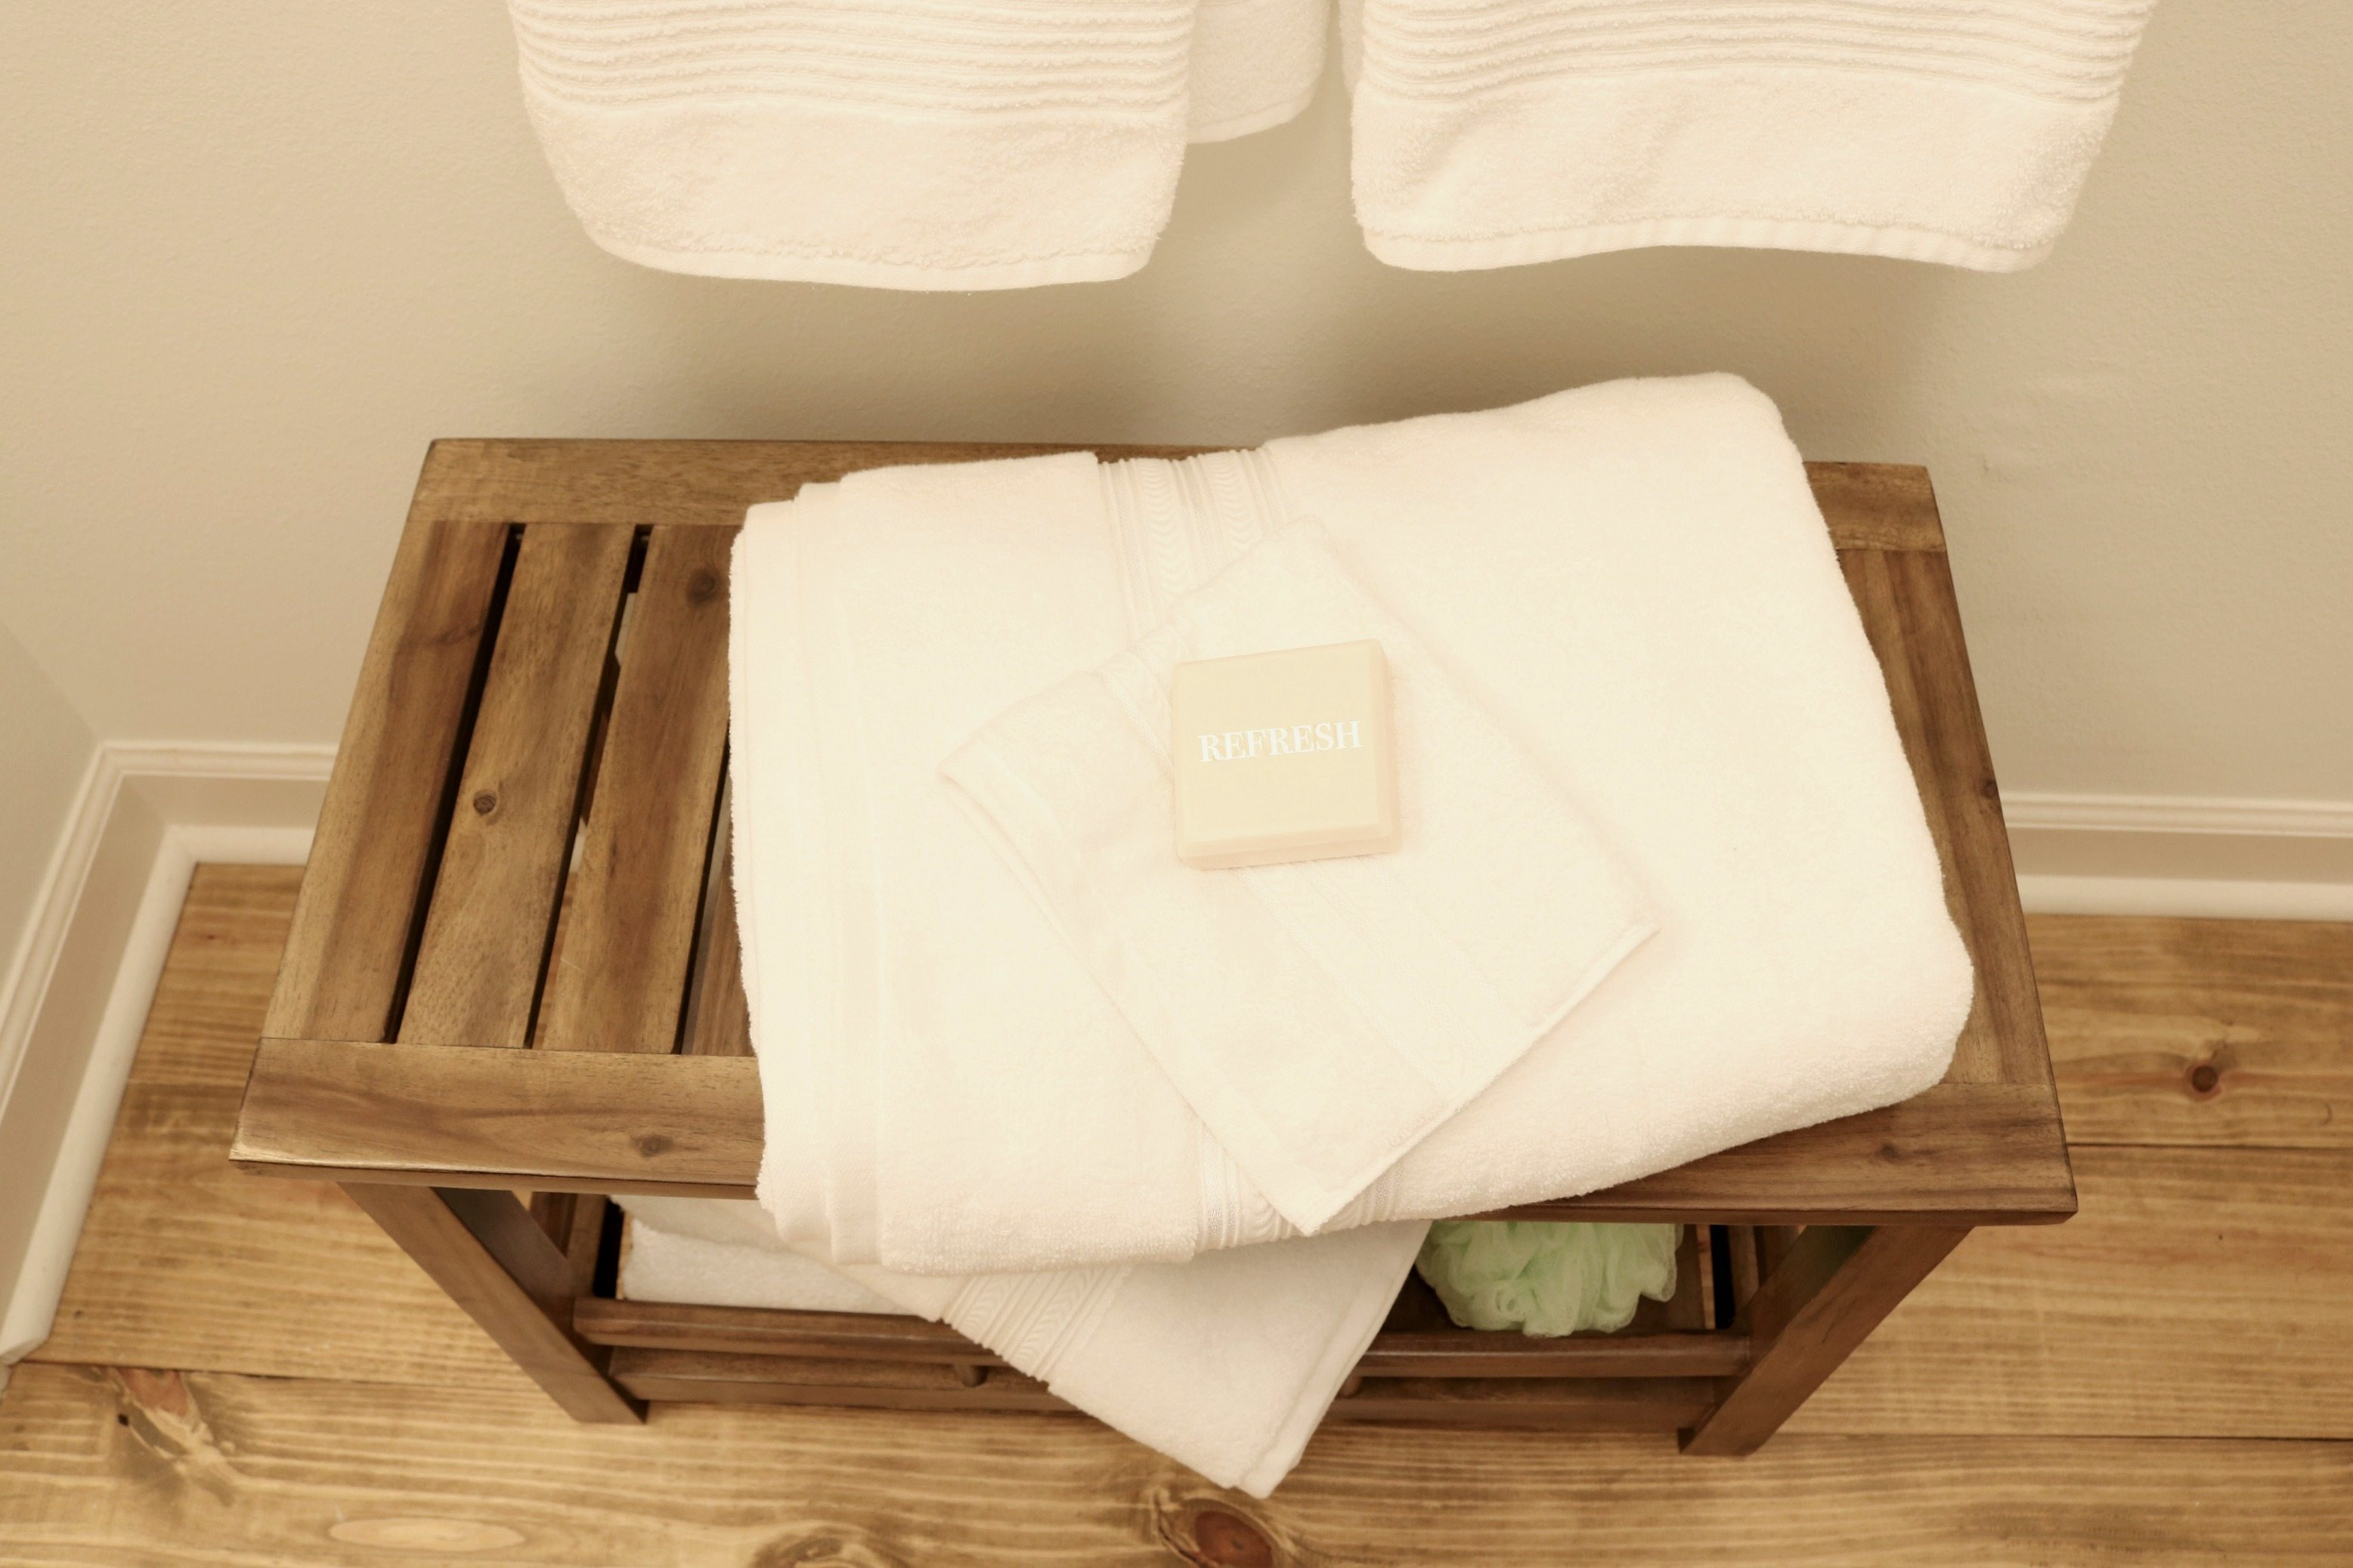 Plenty of white towel and sweet smelling soap for the minimal farmhouse bath